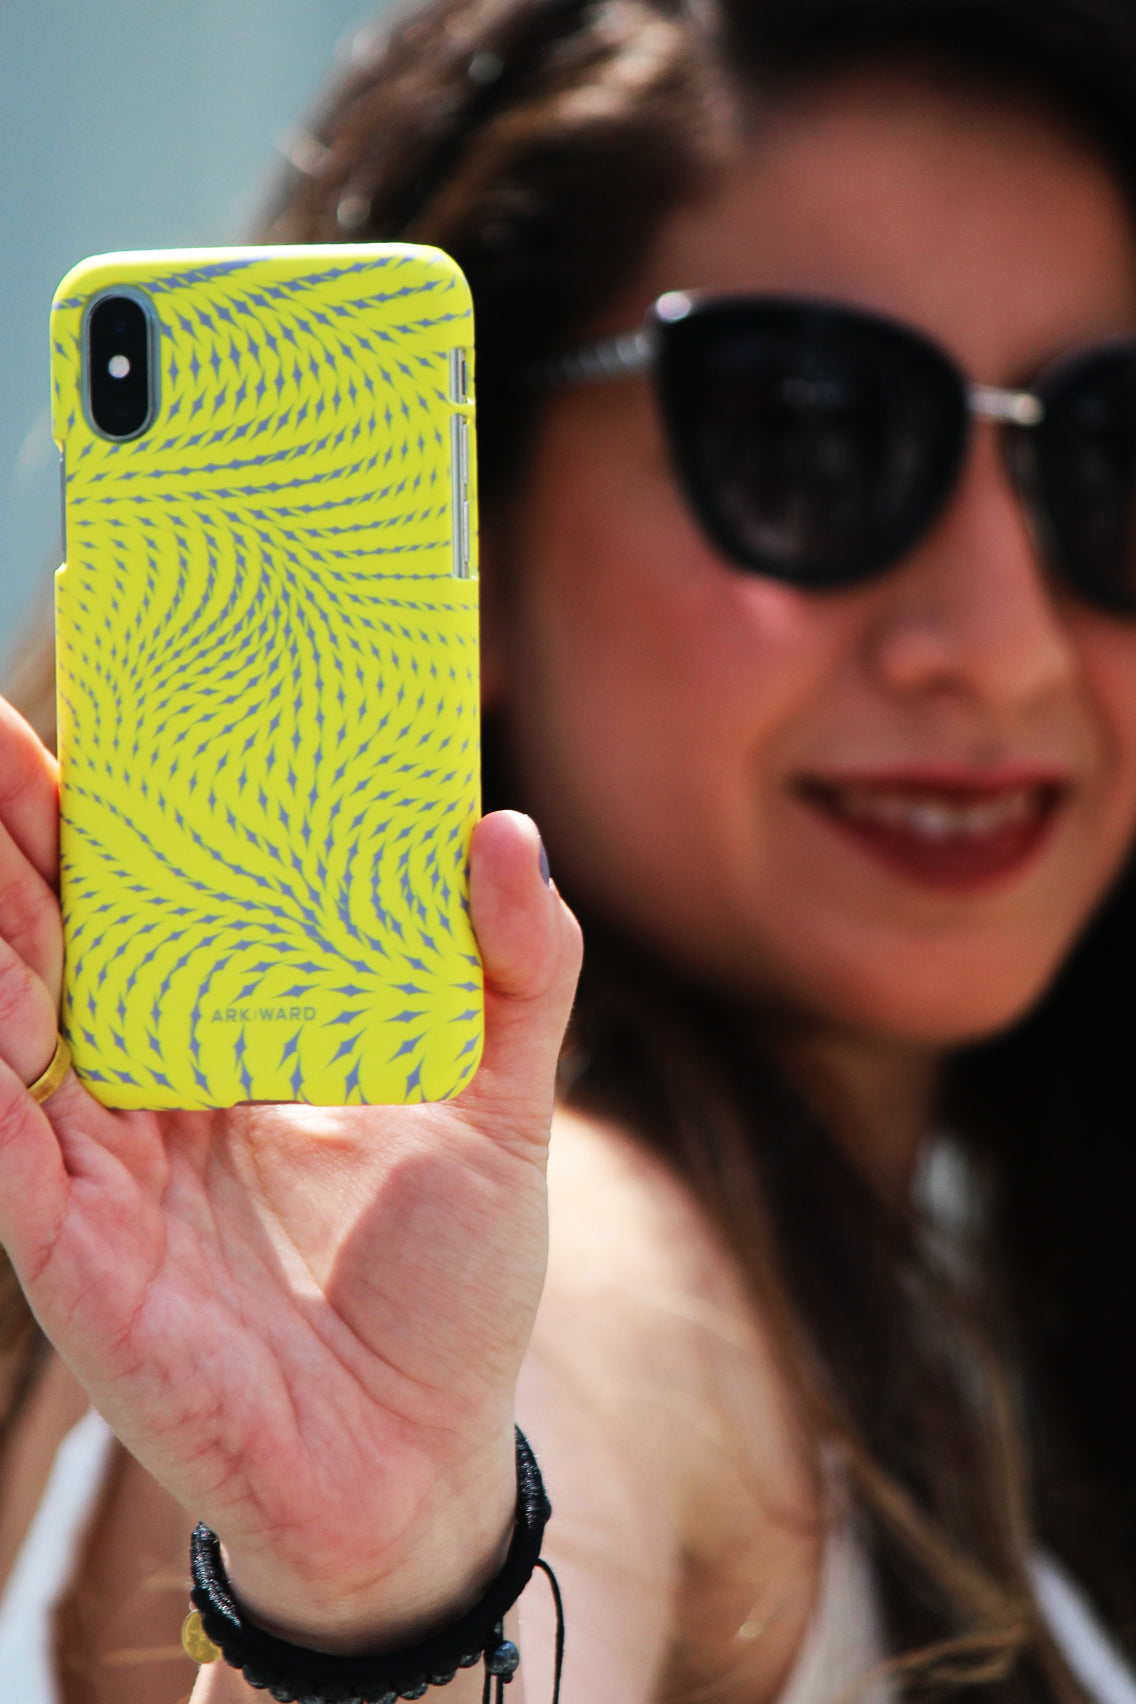 Arkward Yellow iPhone Case